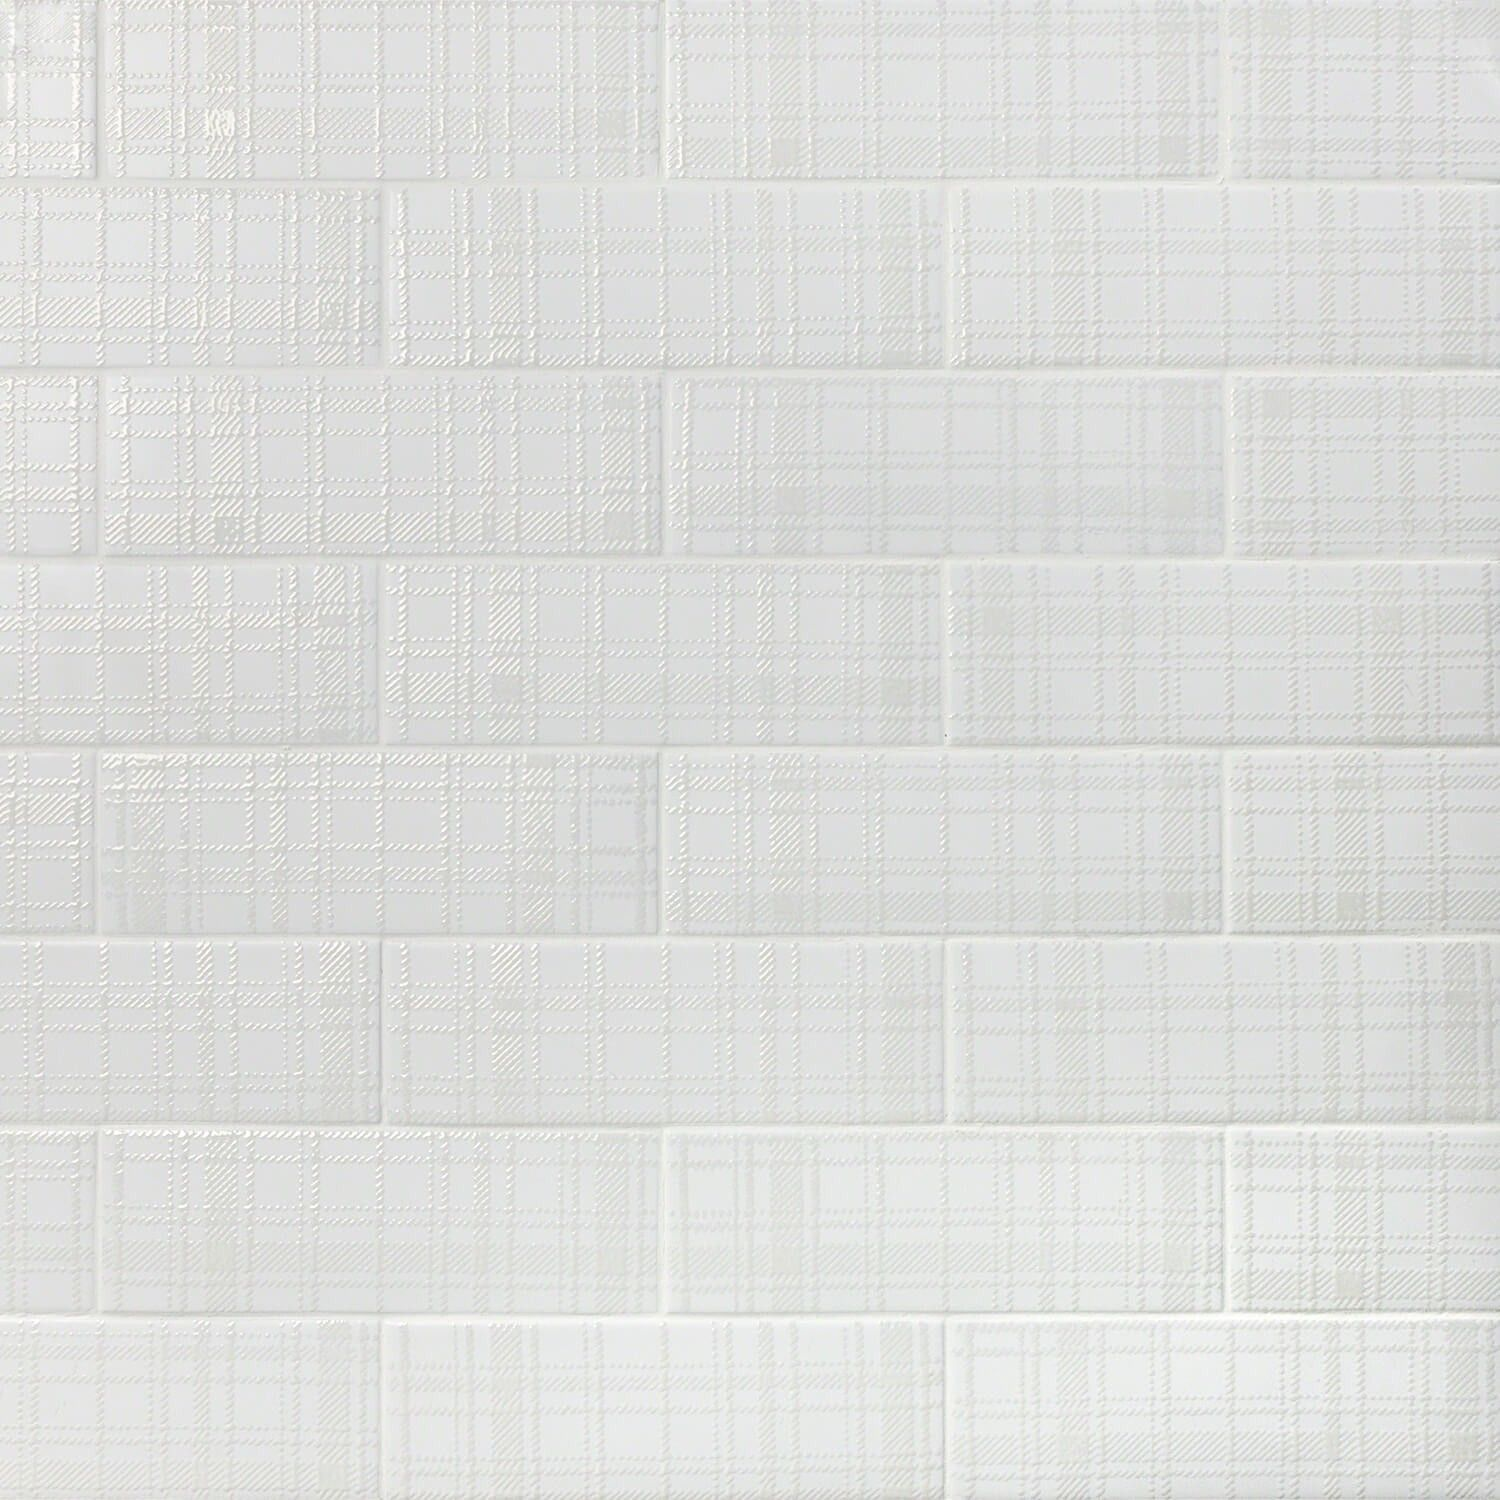 London Grand White 3x9 Ceramic Tile Ceramic Tiles Tiles Splashback Tiles